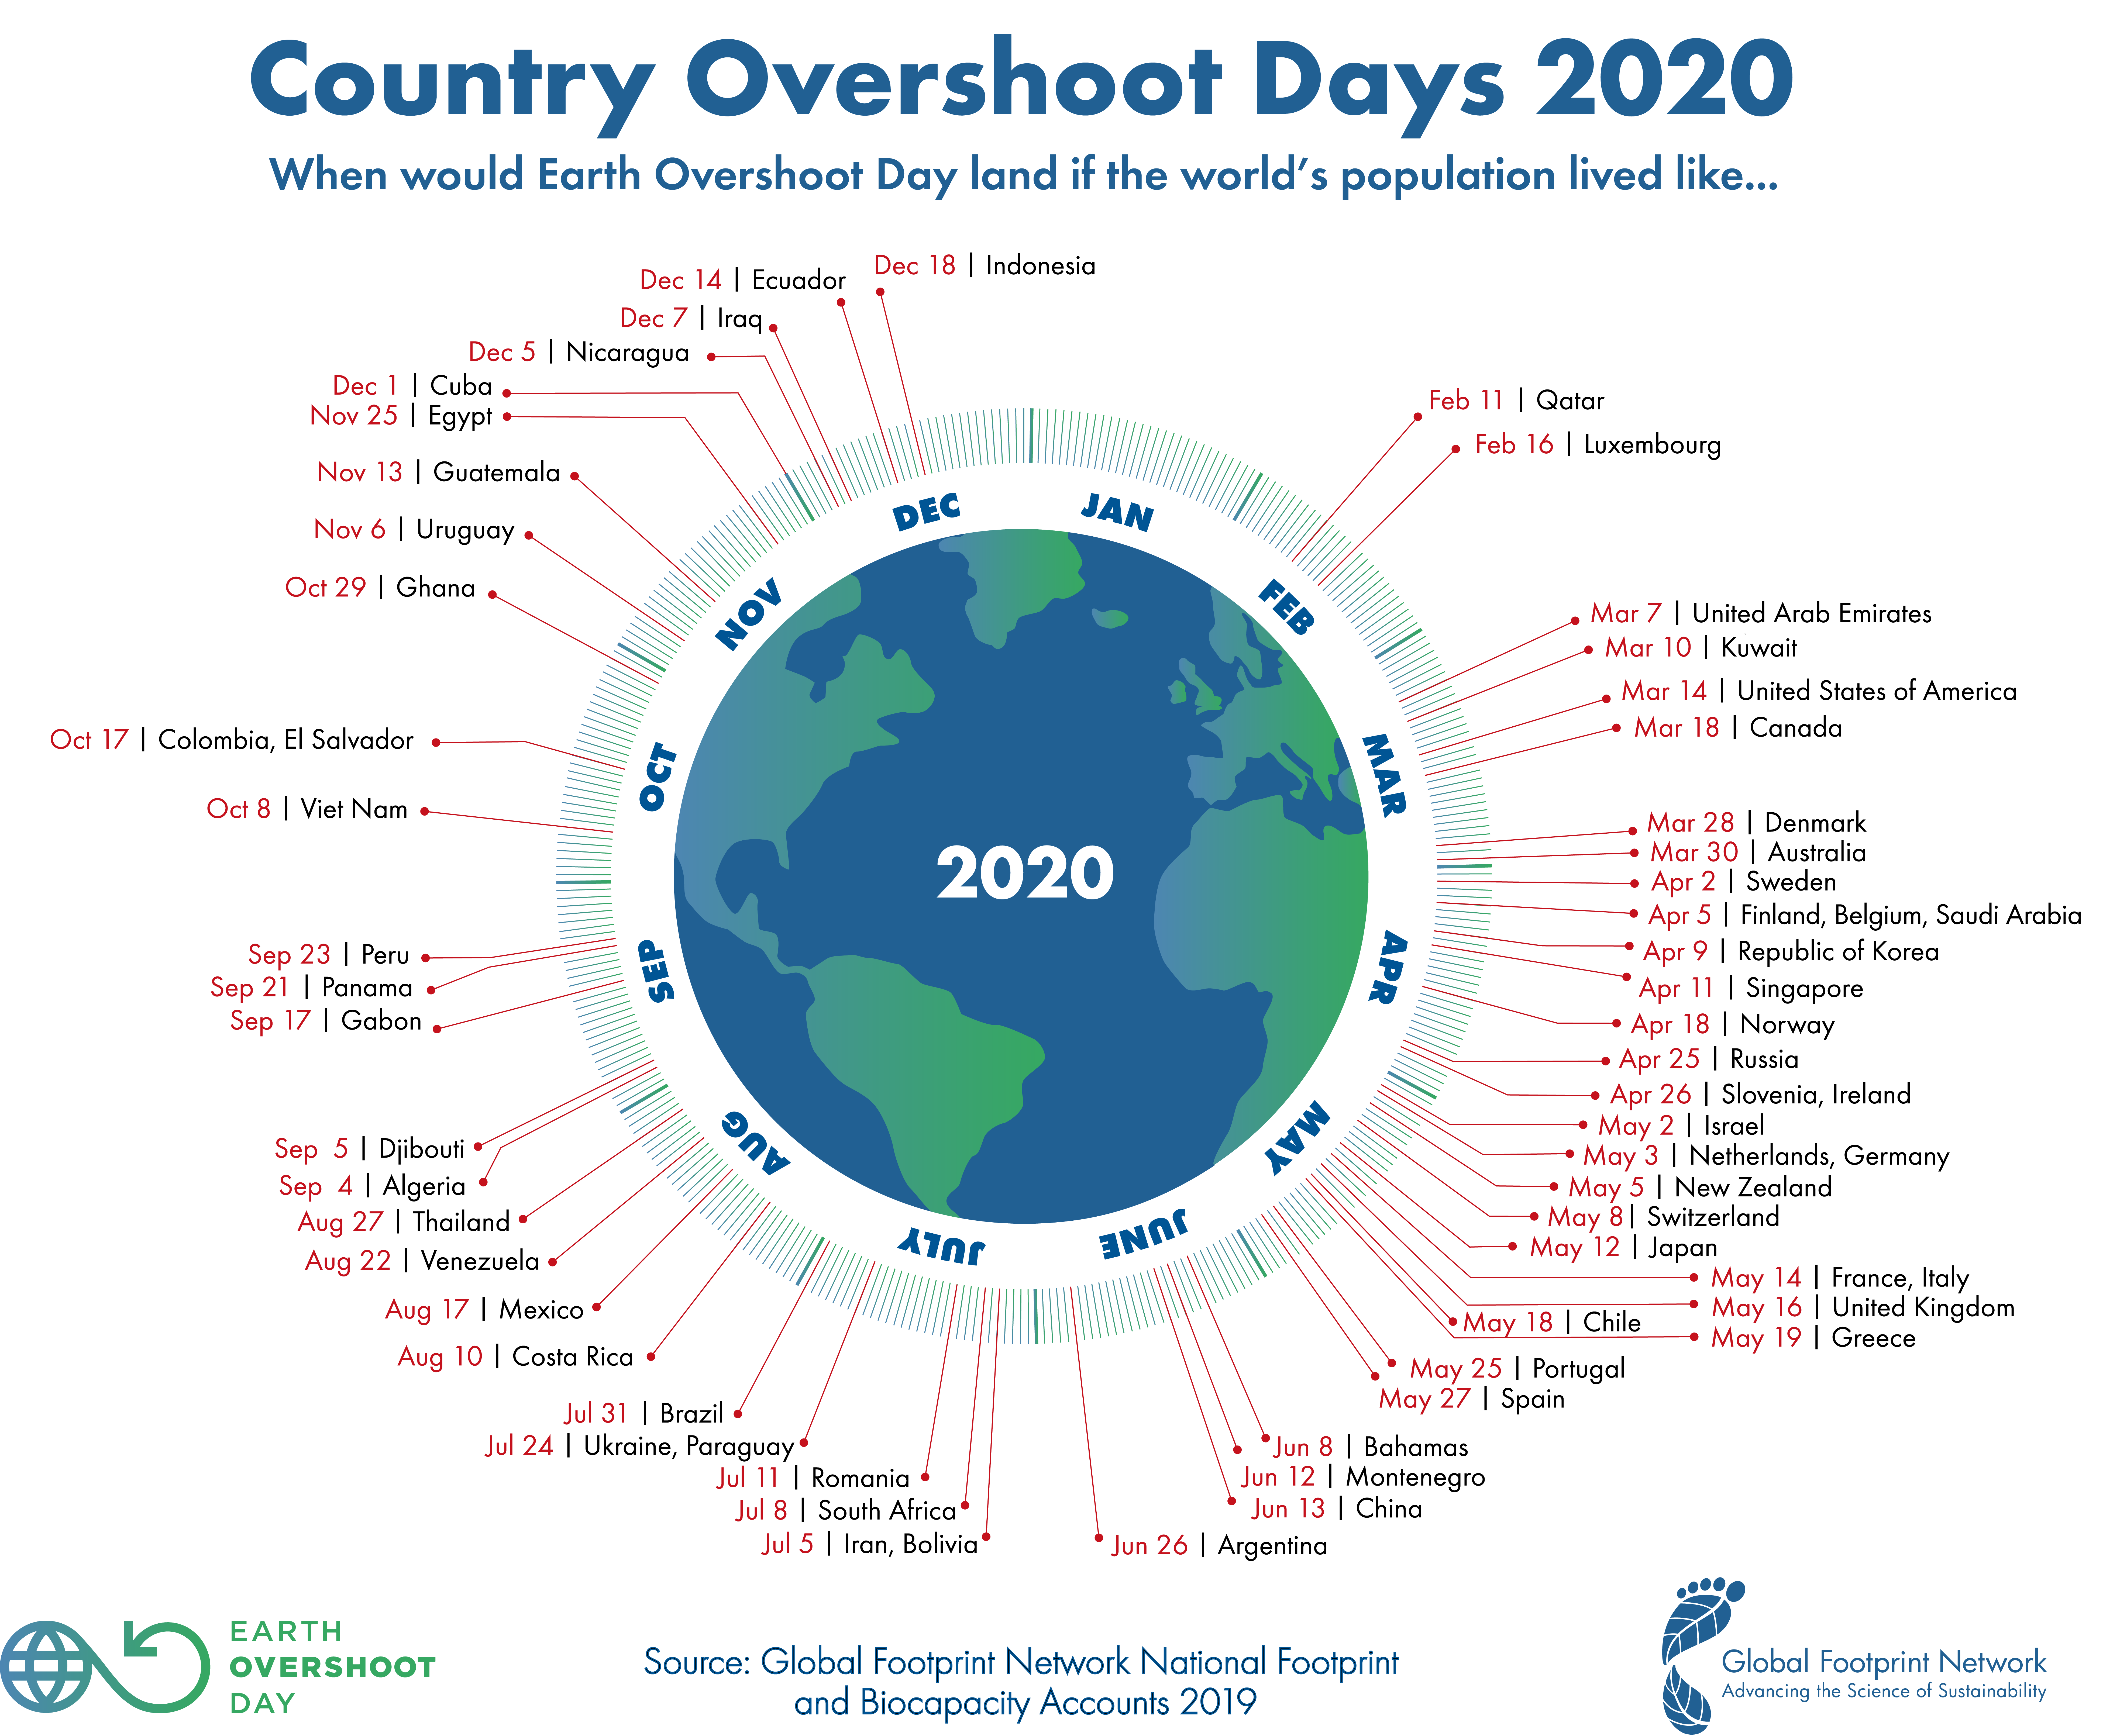 GFN Country Overshoot Day 2020 1